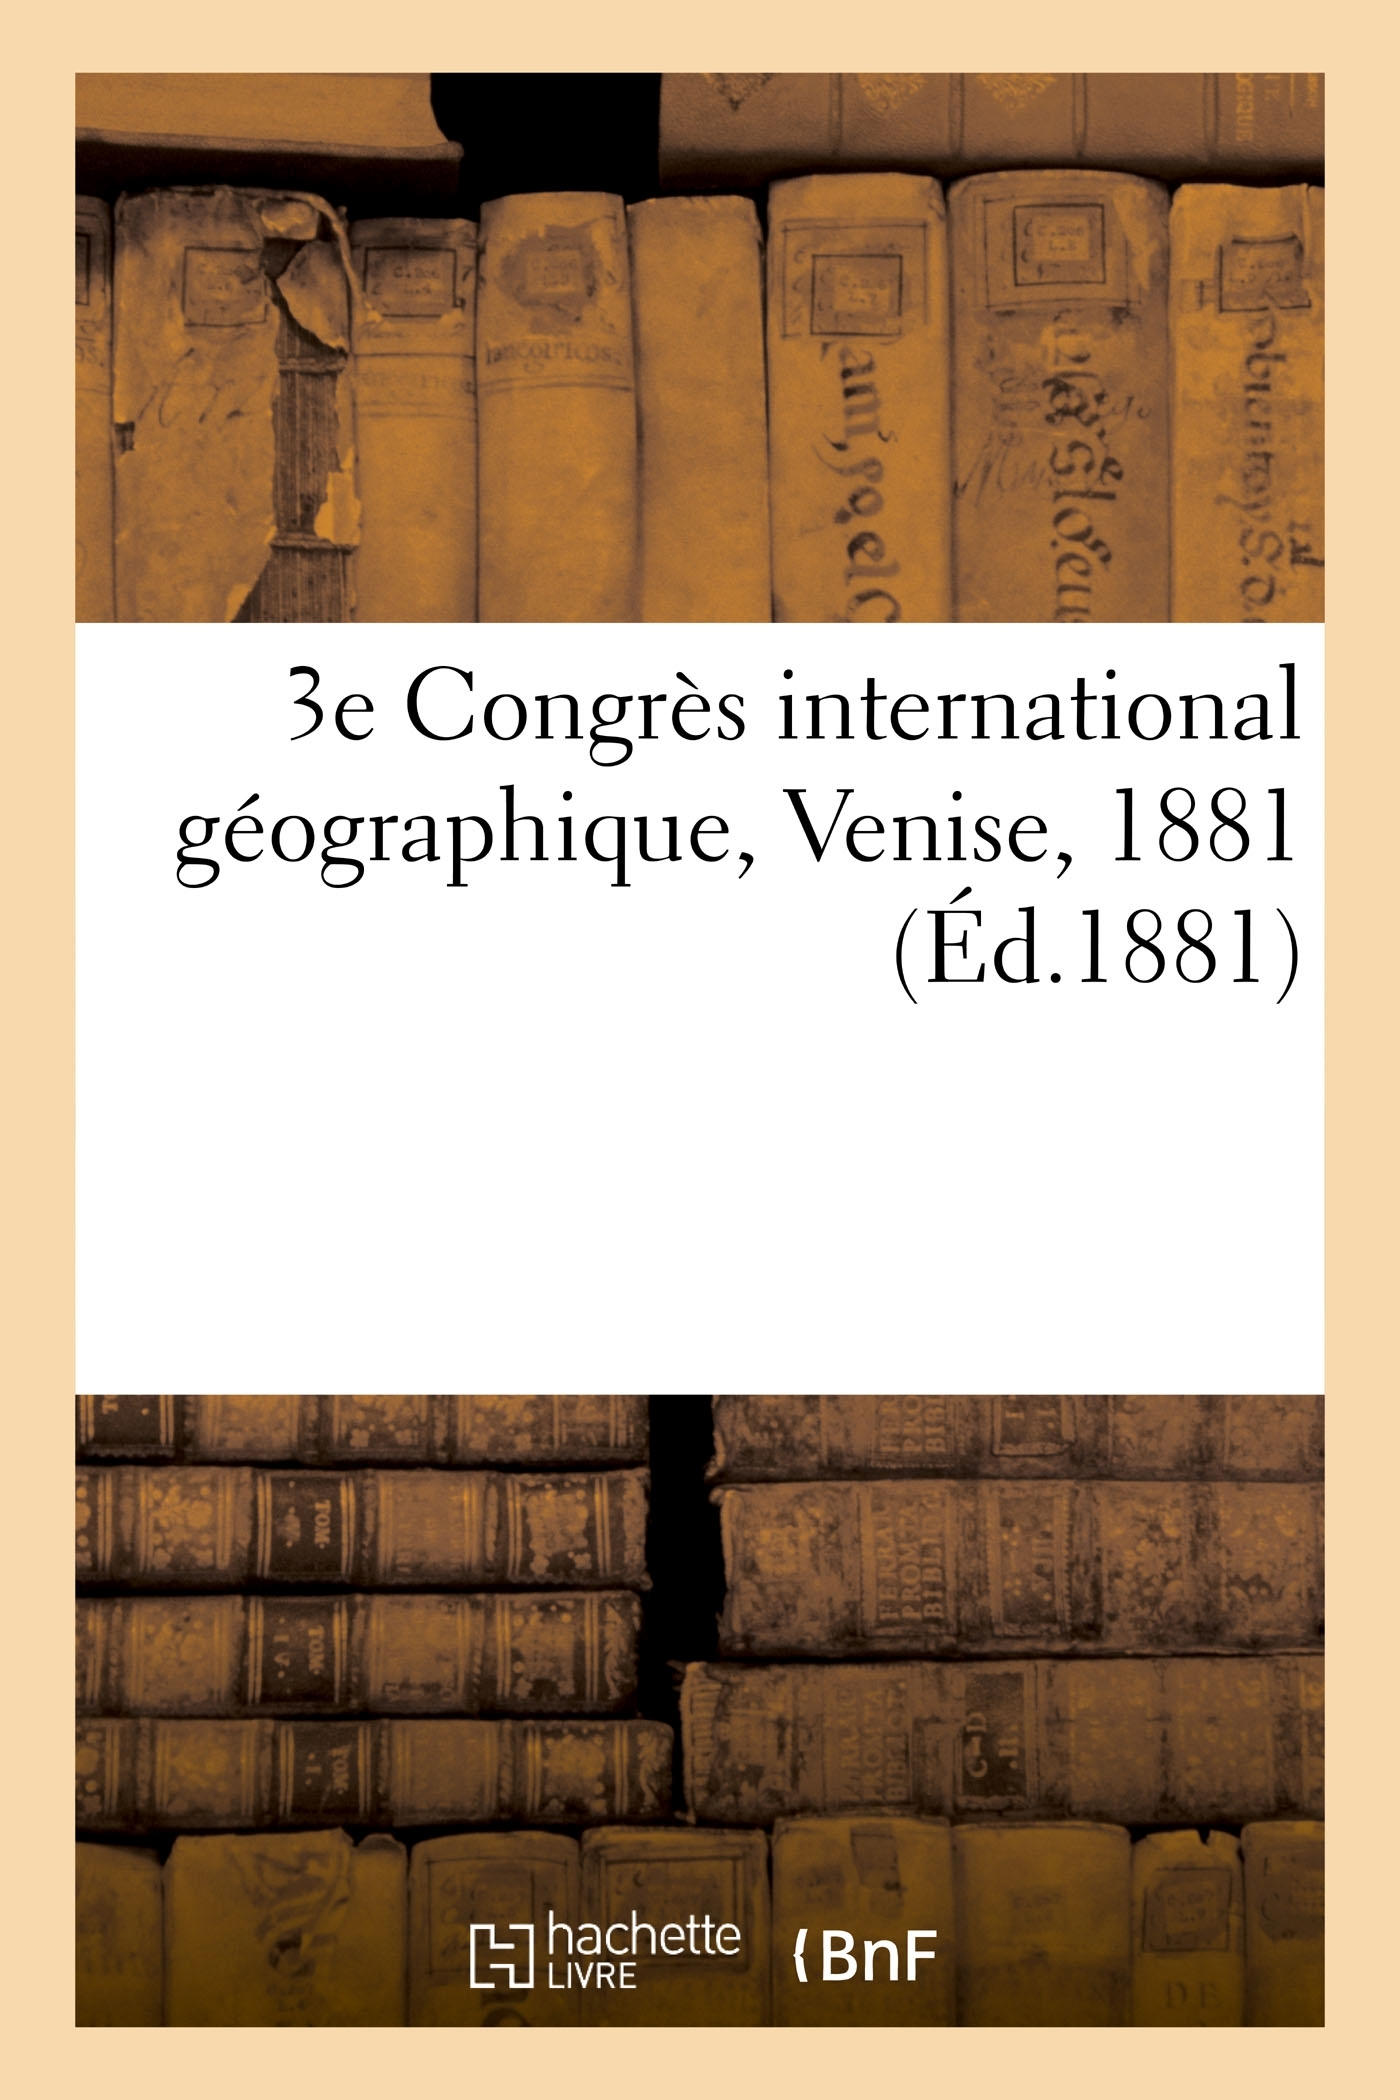 3E CONGRES INTERNATIONAL GEOGRAPHIQUE, VENISE, 1881